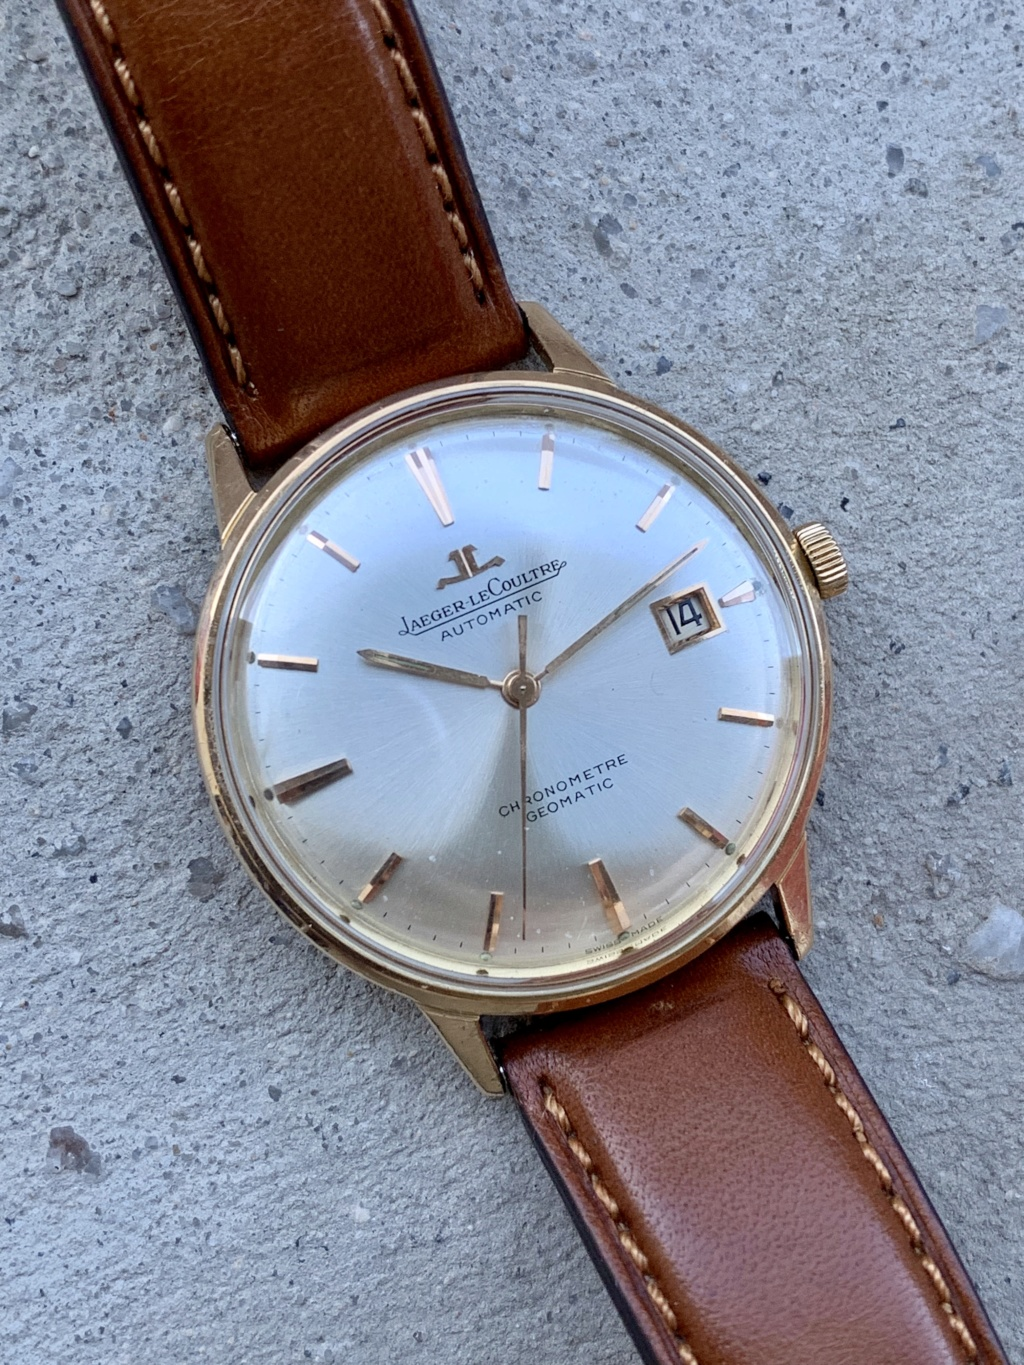 Jaeger - [Vends] Jaeger Lecoultre Geomatic 18K Img_0710